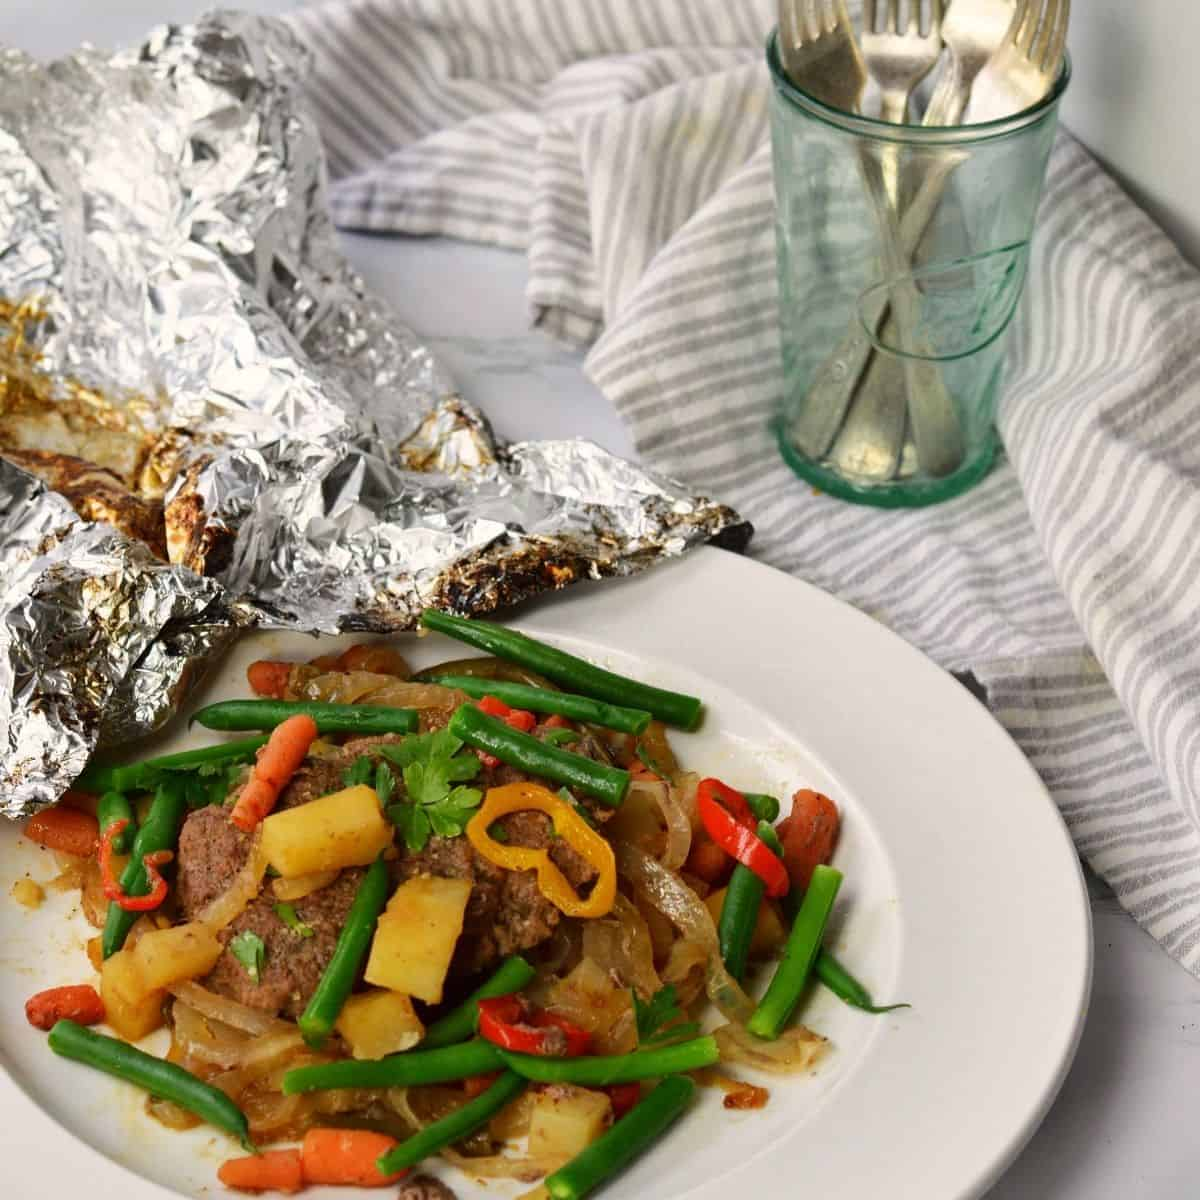 Ground beef patty with vegetables on plate and foil behind